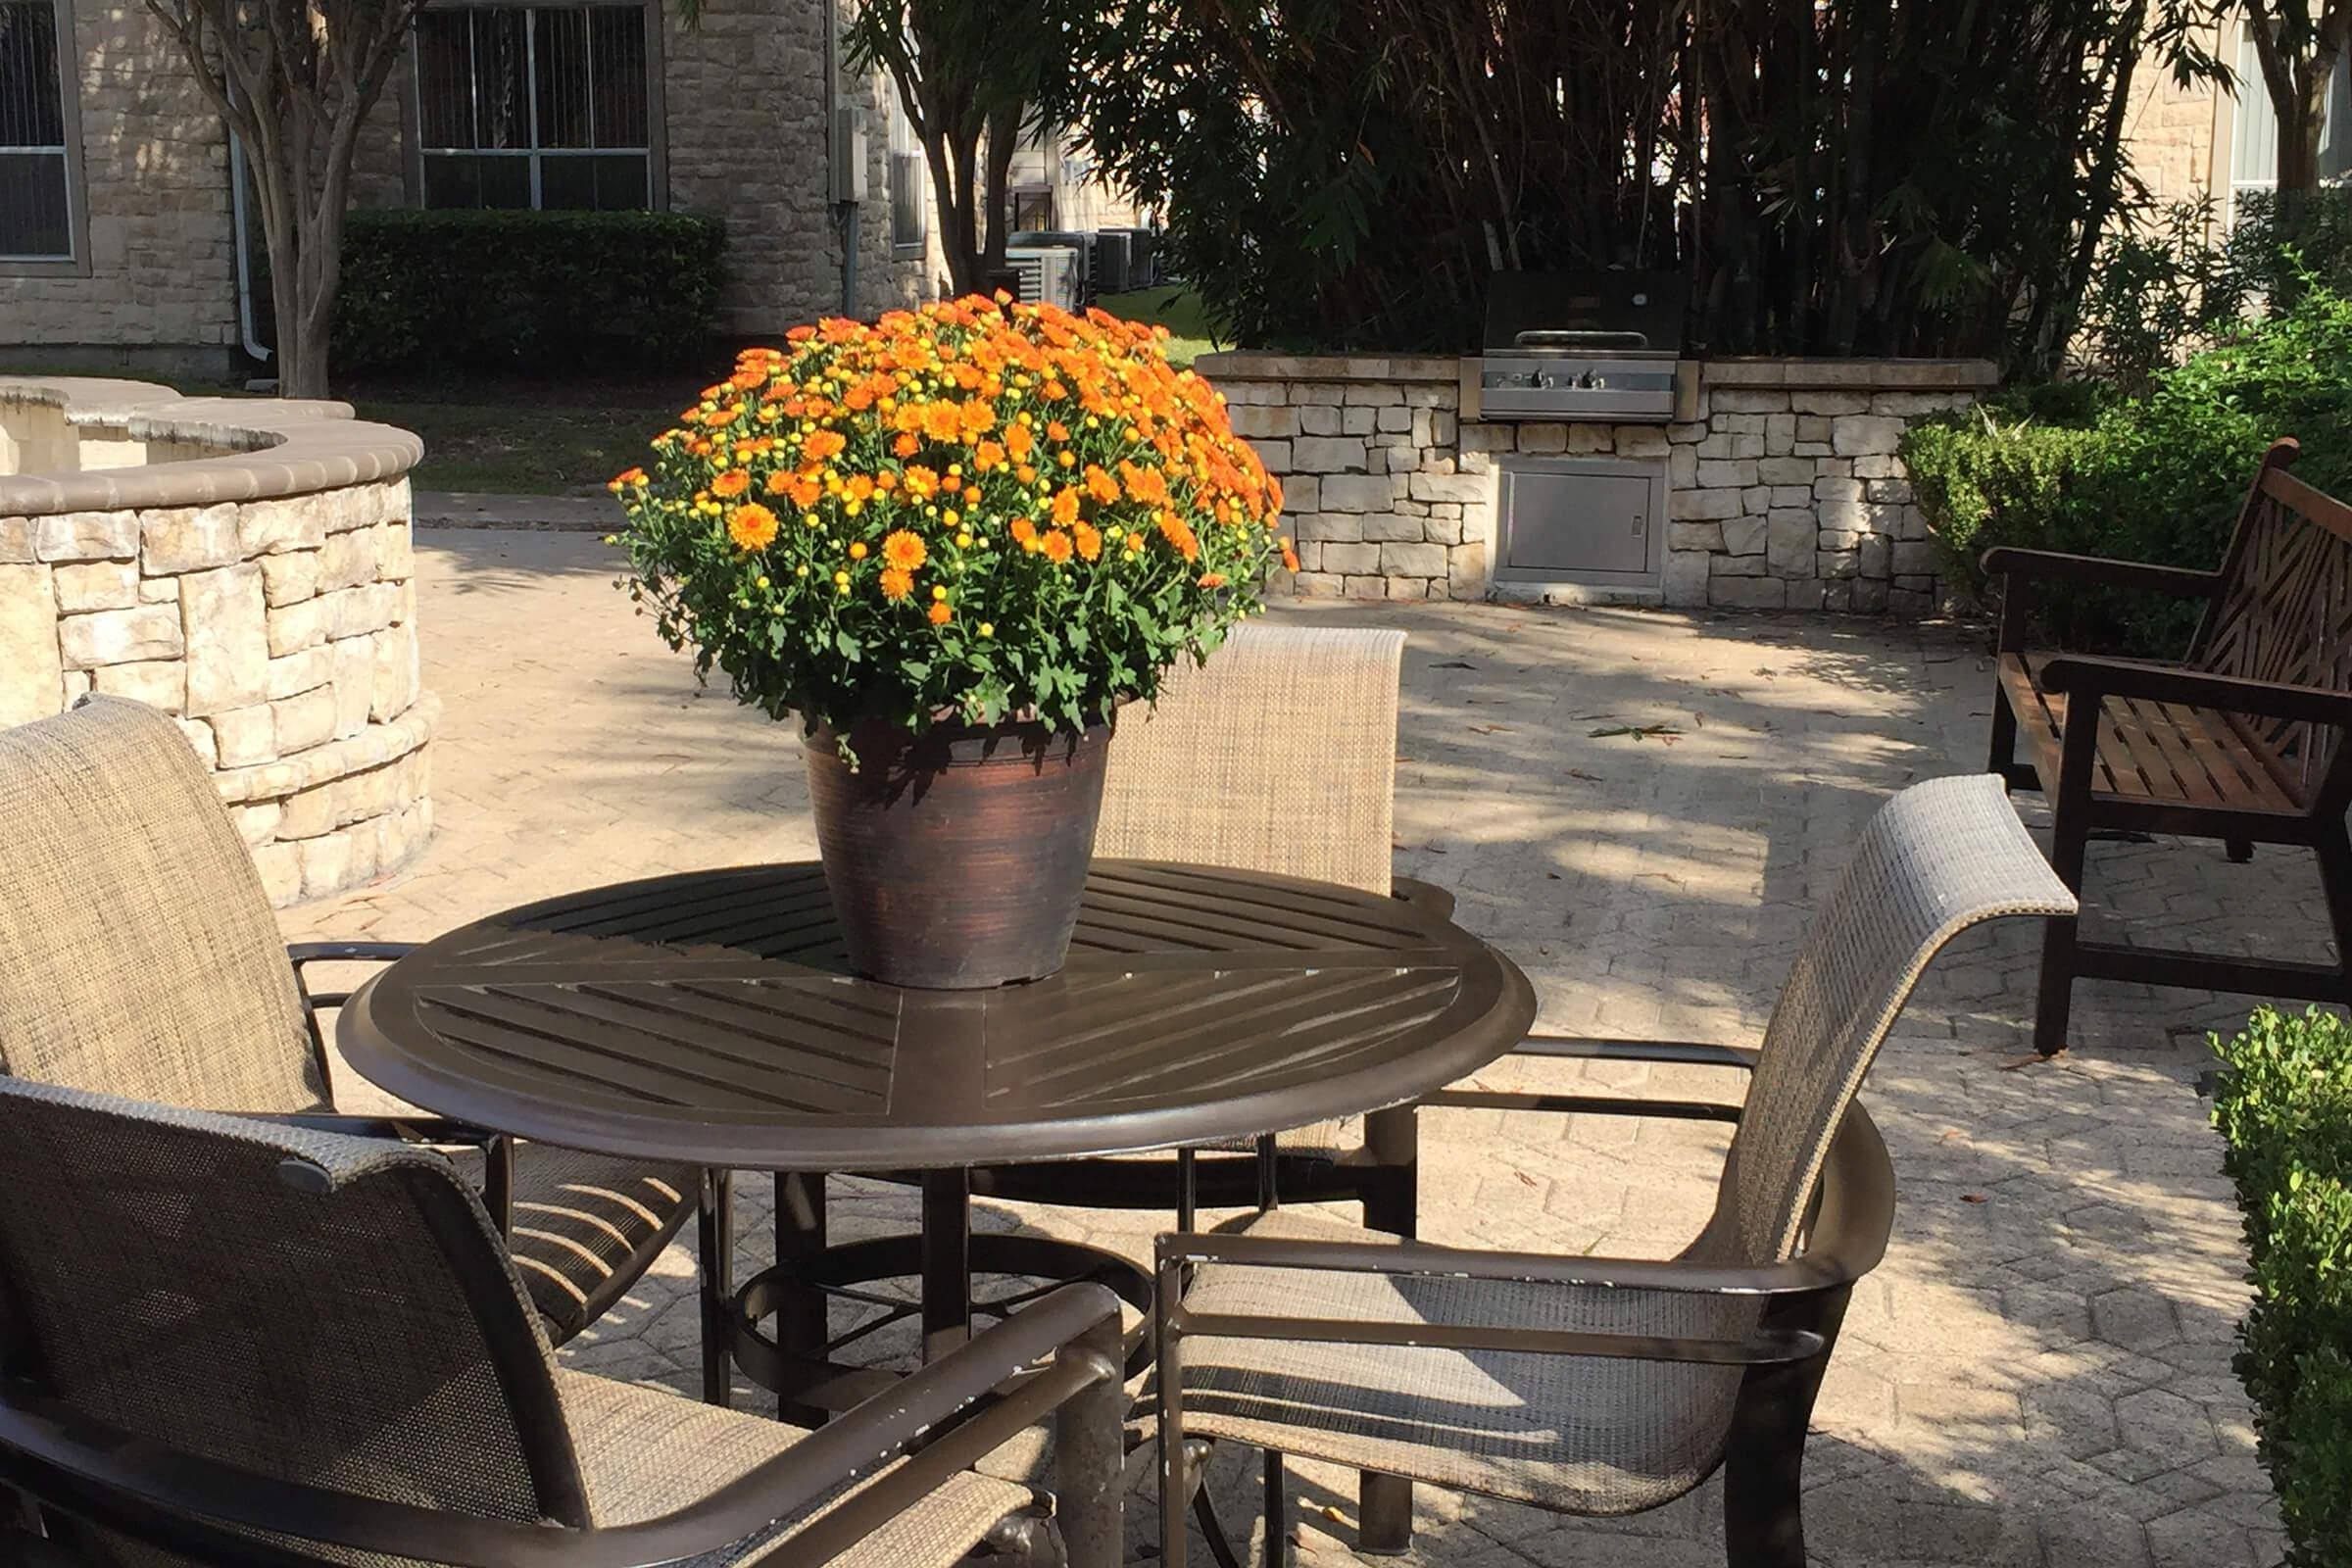 a vase of flowers sitting on a park bench